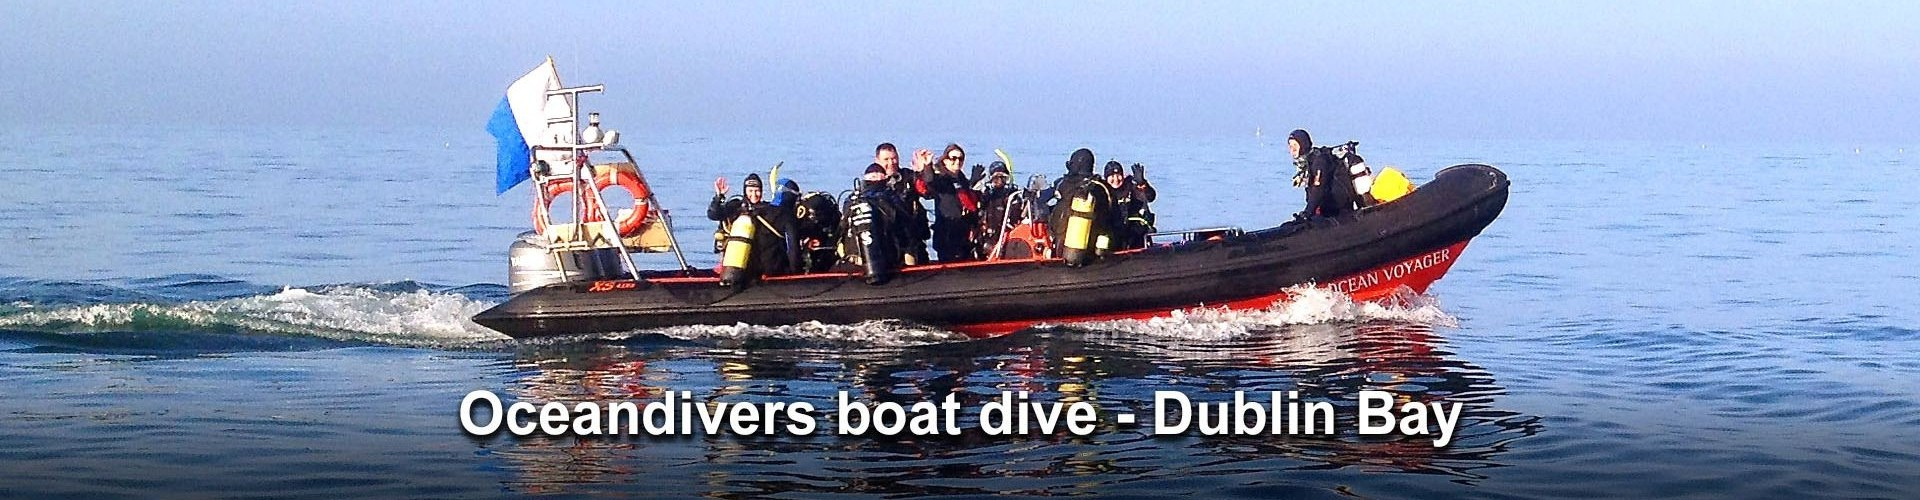 Boat dives Dublin Bay